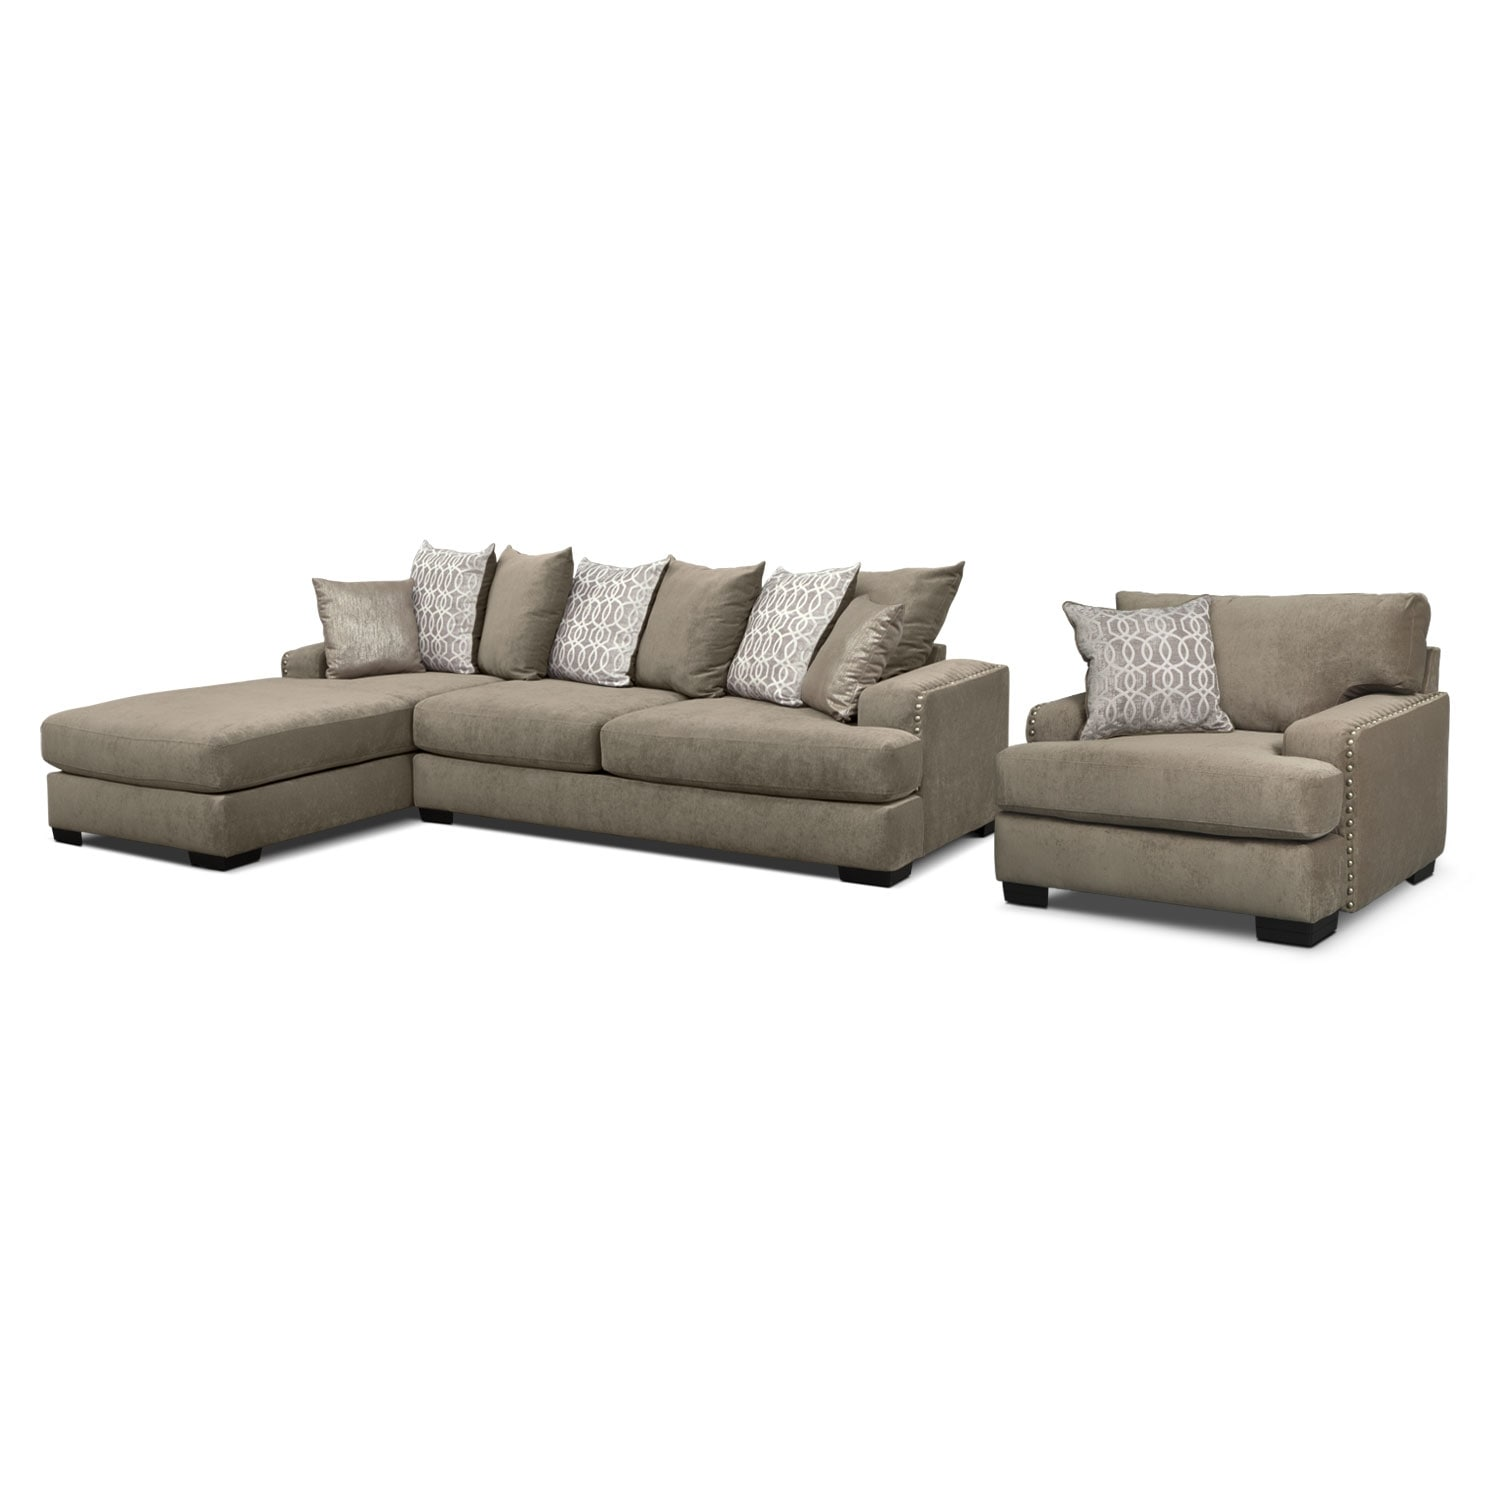 Tempo 2-Piece Sectional with Left-Facing Chaise and Chair Set - Platinum